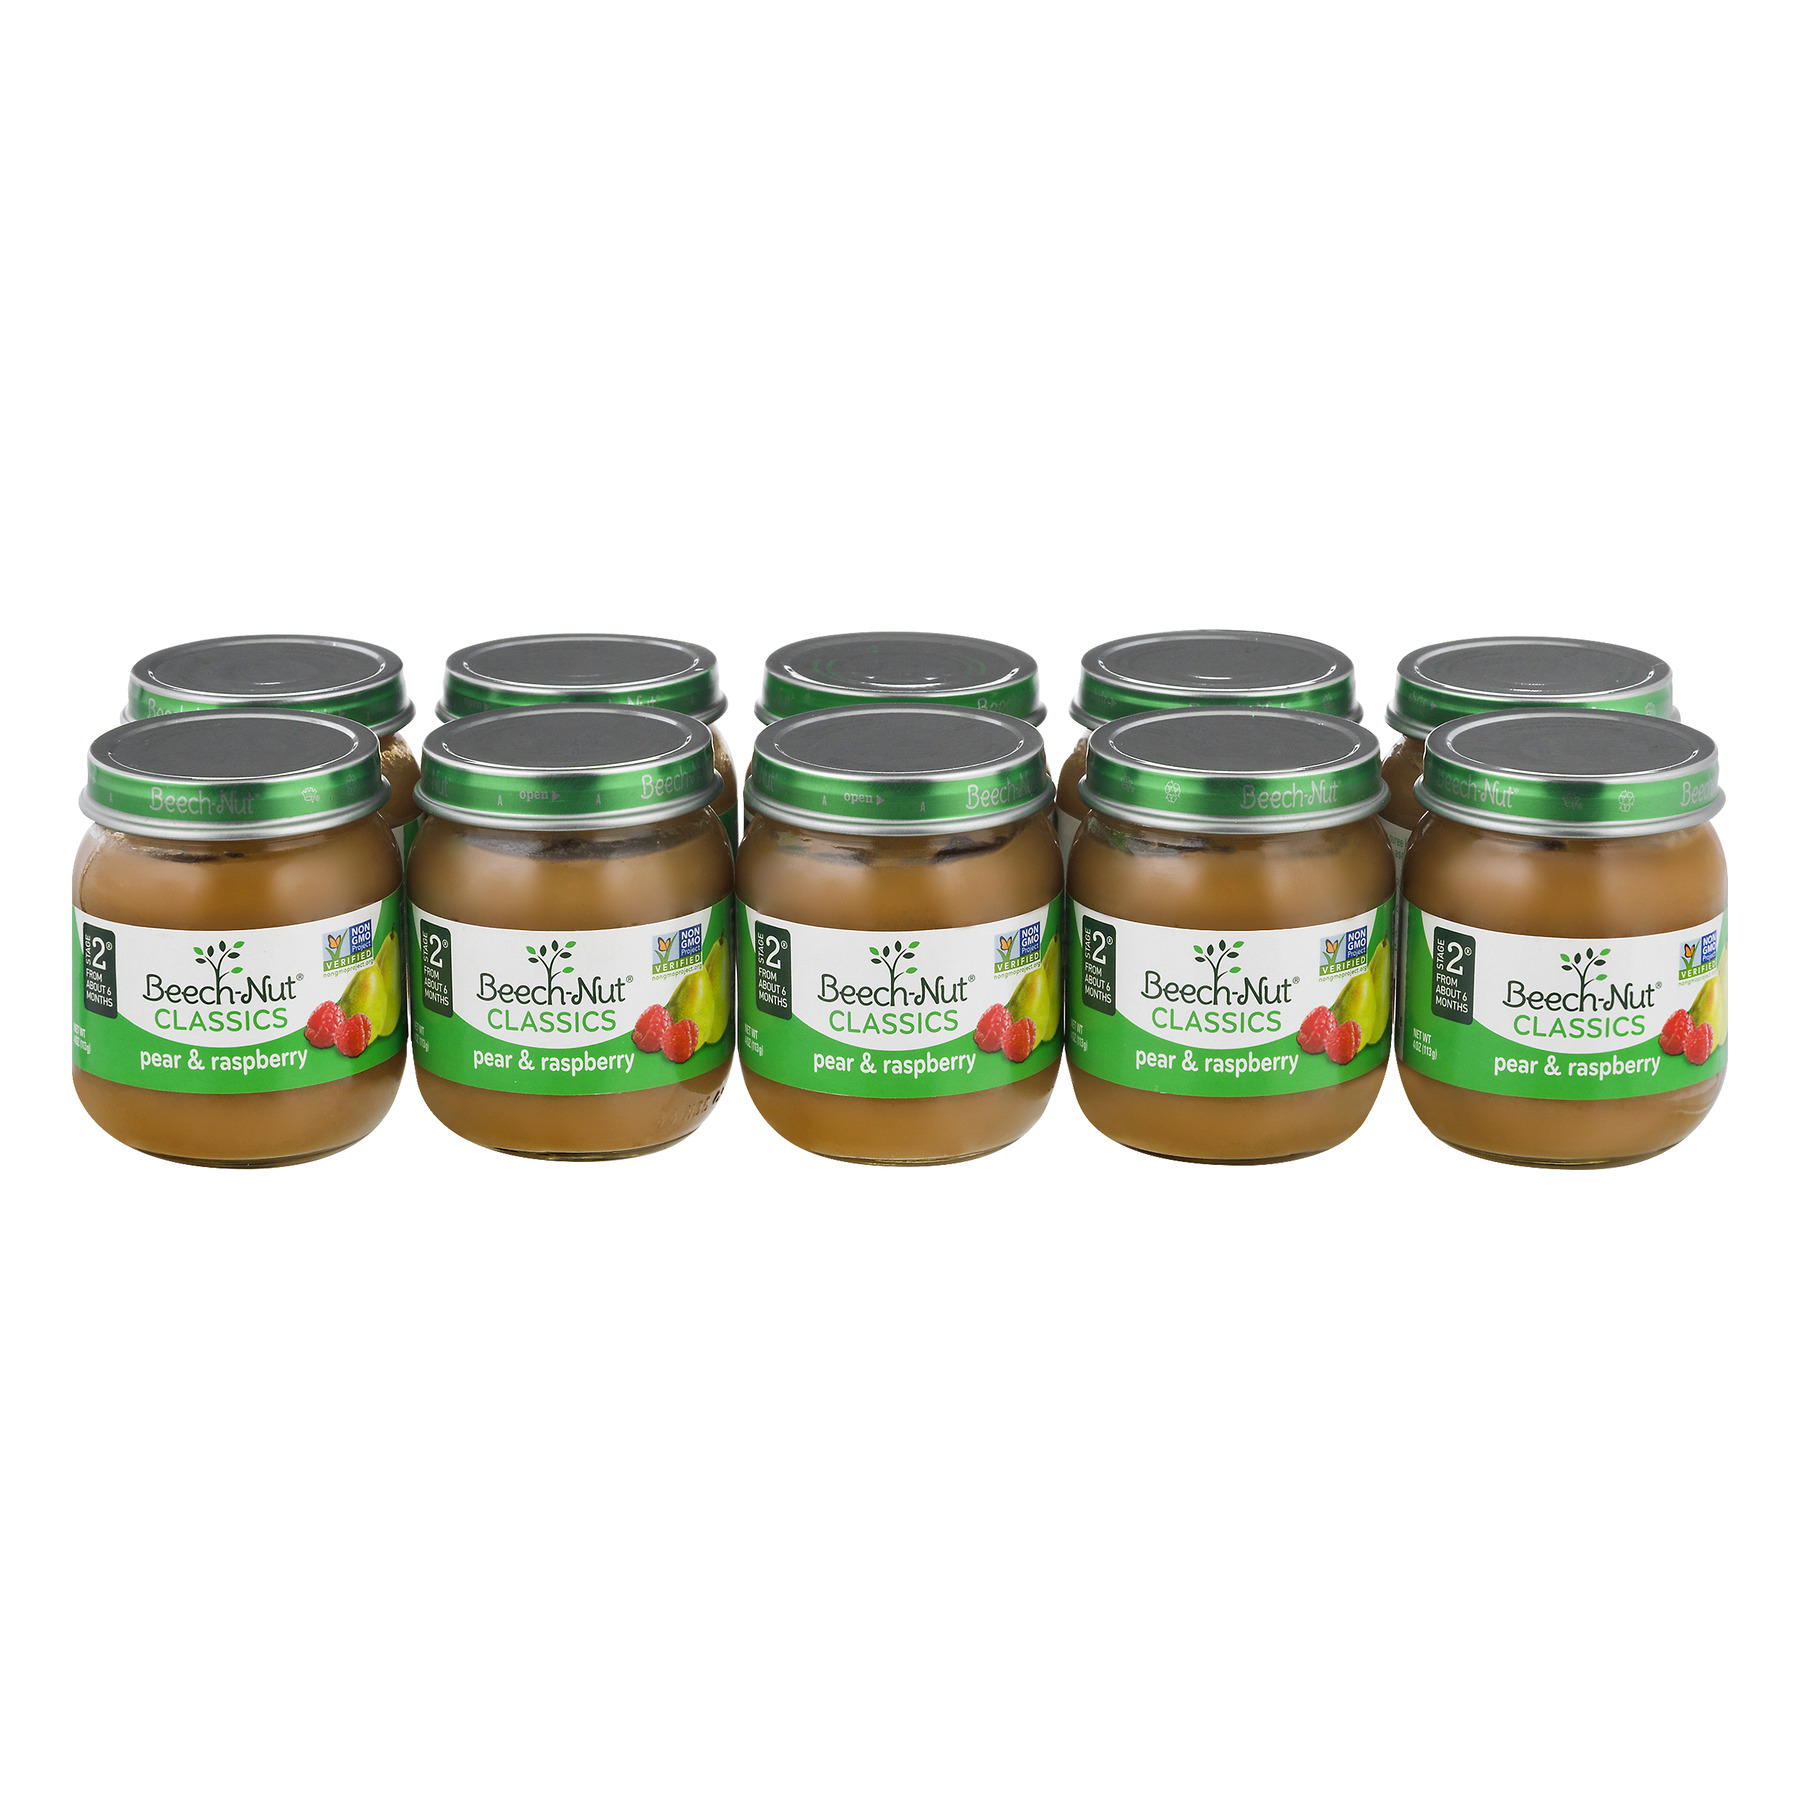 Beech-Nut Classics Pear & Raspberry Stage 2 - 10 PK, 10.0 PACK